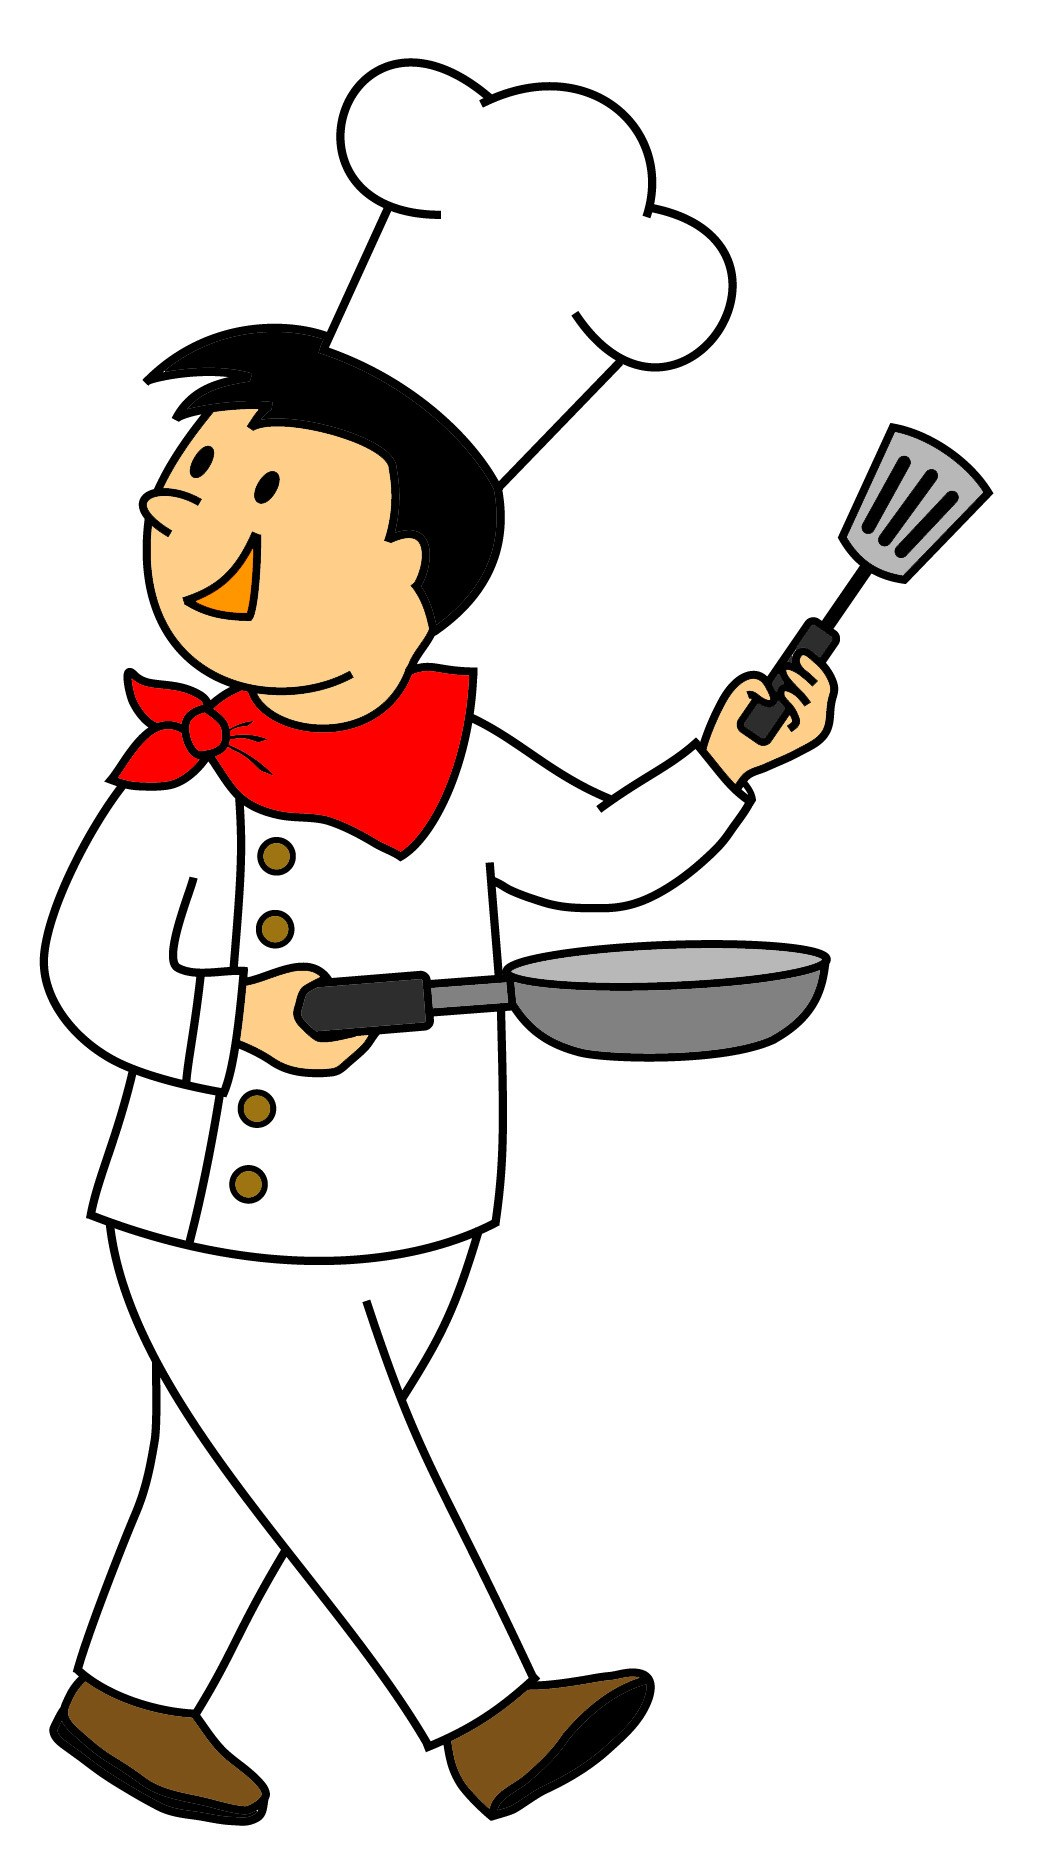 Free clipart of chef 6 » Clipart Portal.